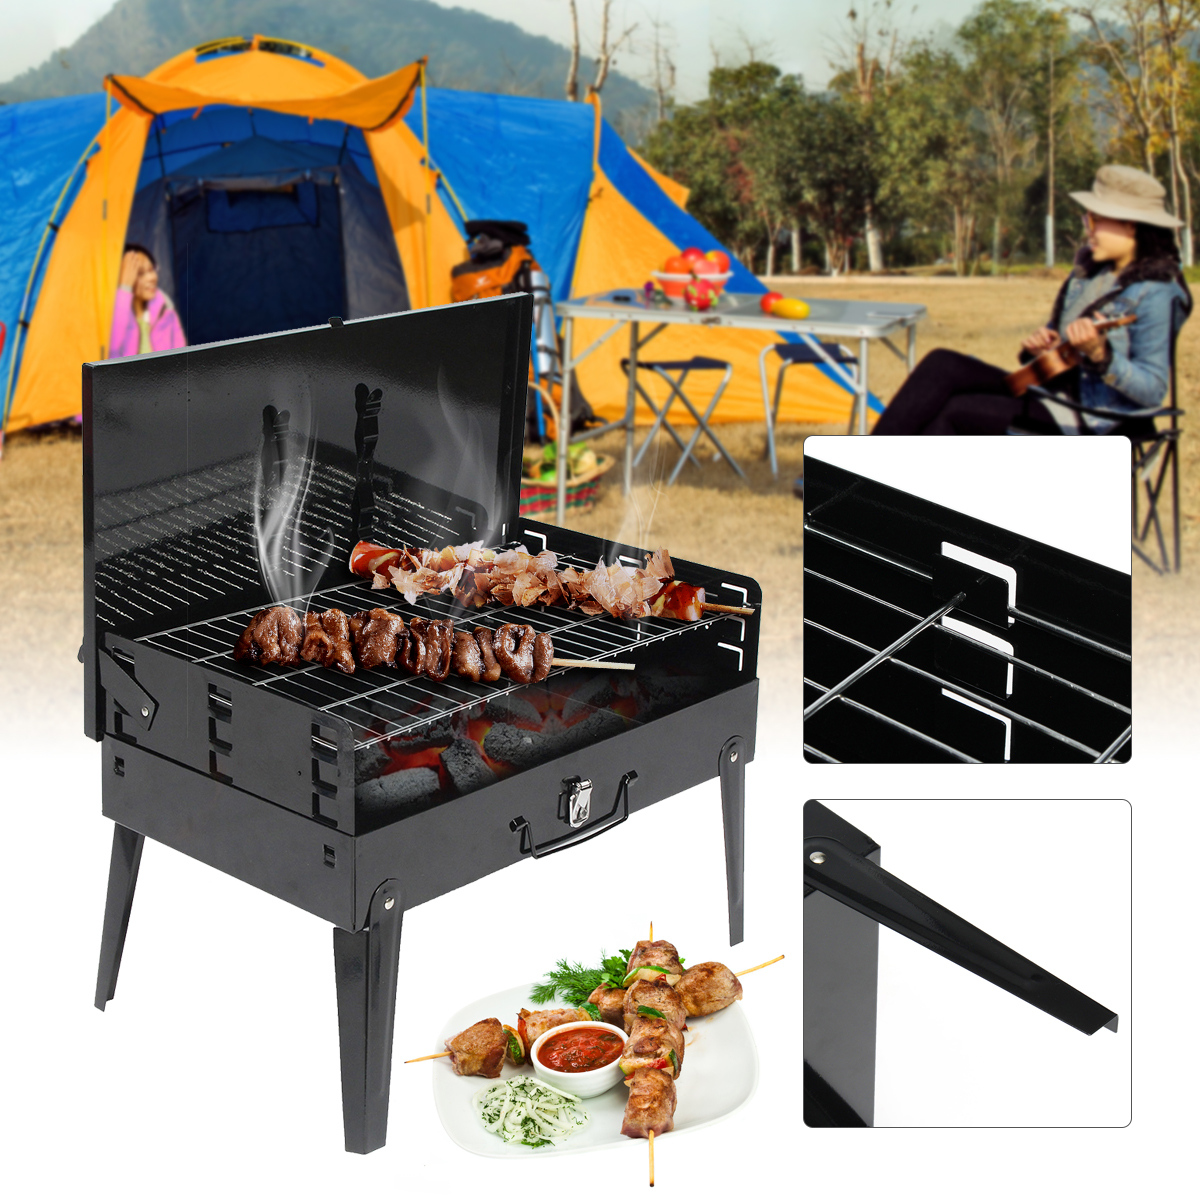 Charcoal Bbq Us 36 84 45 Off Portable Bbq Barbecue Grills Burner Oven Outdoor Garden Charcoal Barbeque Patio Party Cooking Foldable Picnic For 3 5 Person In Bbq